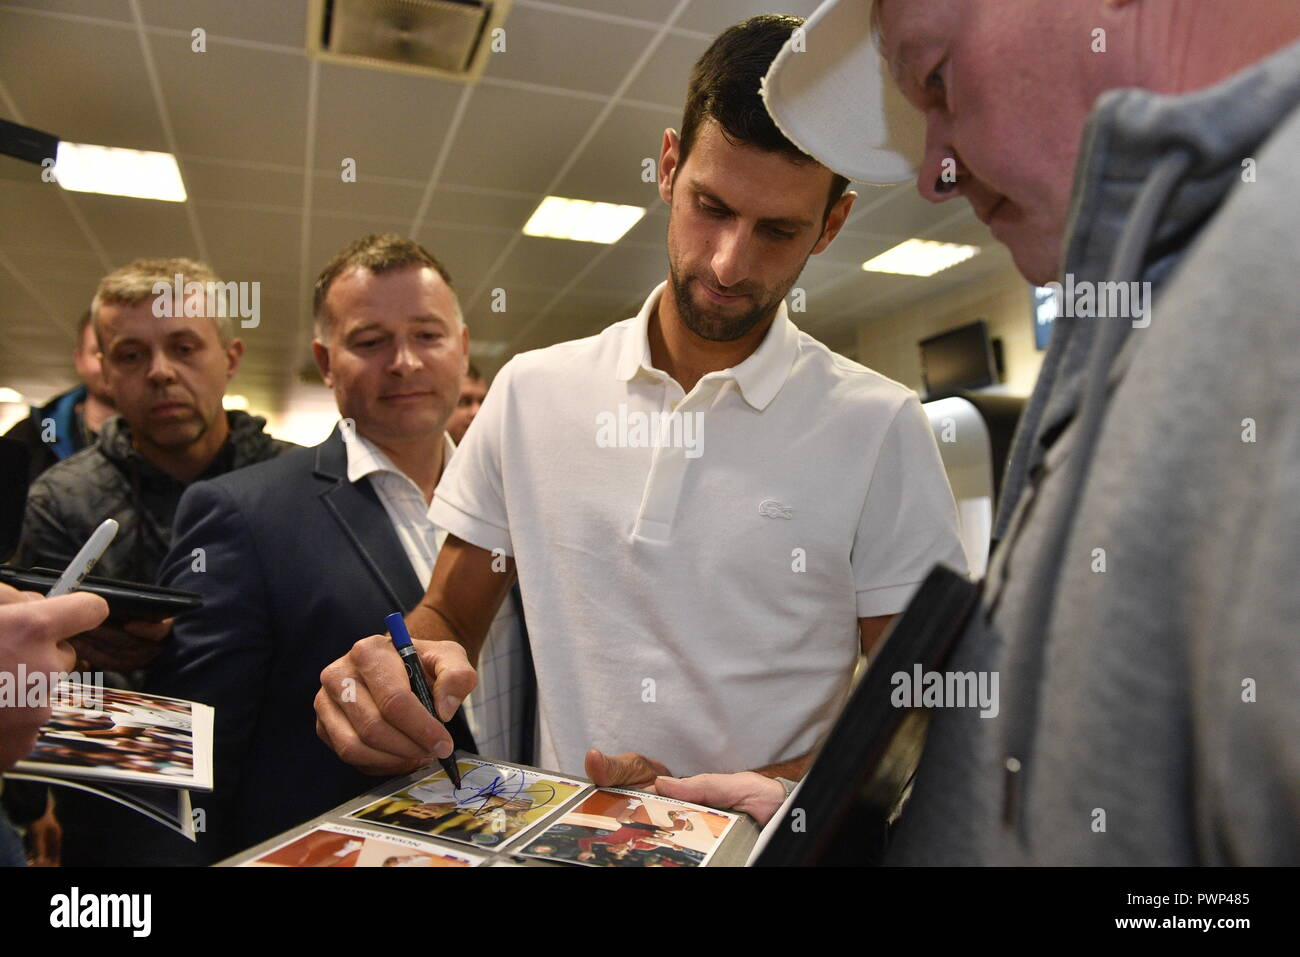 Prague, Czech Republic. 17th Oct, 2018. Serbian tennis star Novak Djokovic, centre, gives an autographs to fans, as he arrived to Prague on Wednesday, October 17, 2018, prior to the tomorrow's farewell party of tennis player Radek Stepanek ending his career. Credit: Michal Kamaryt/CTK Photo/Alamy Live News - Stock Image